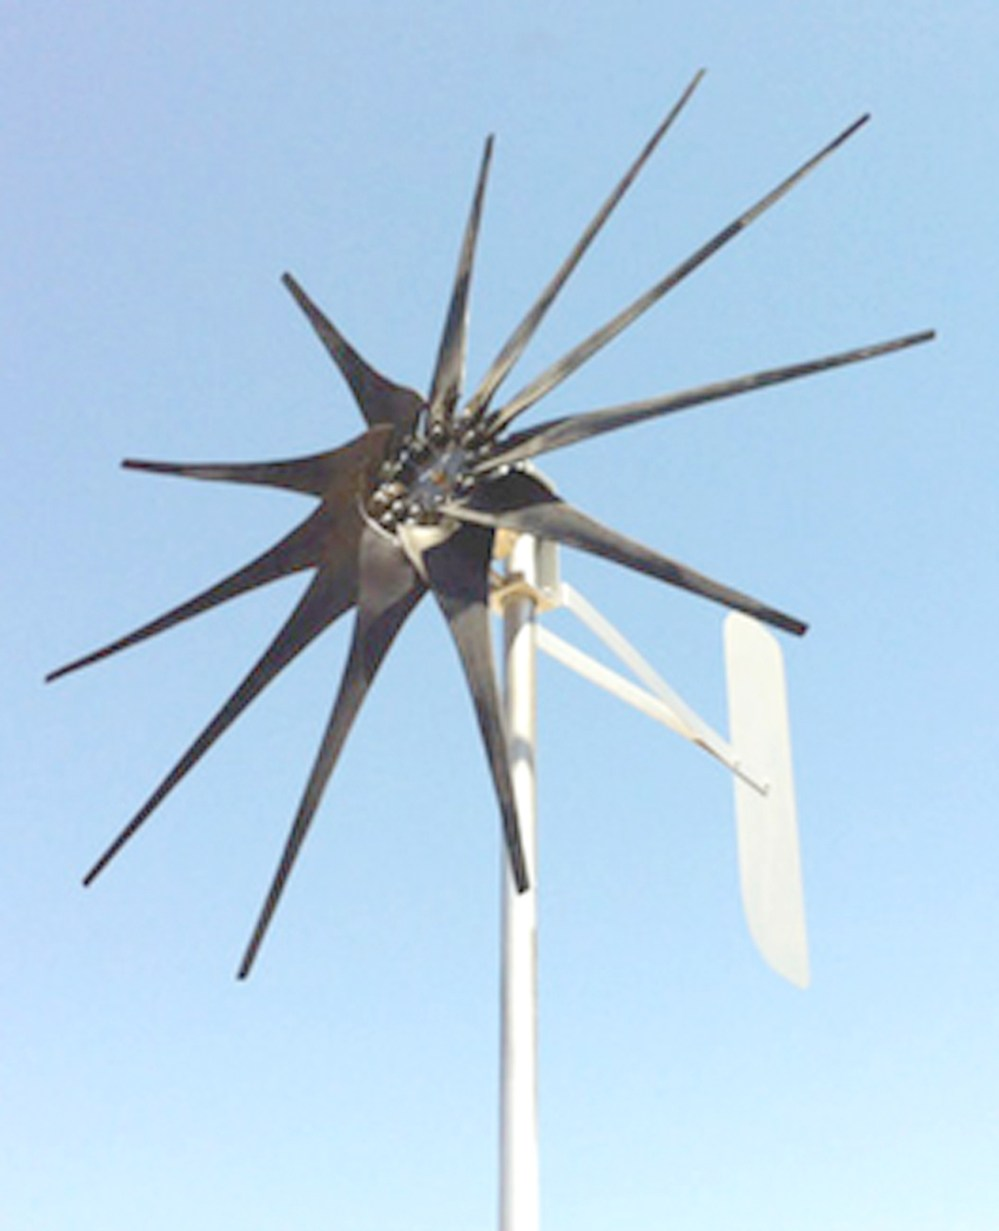 medium resolution of our wind turbine electricity generators offer low cost and economical installation for the do it yourselfer diy and off grid crowd